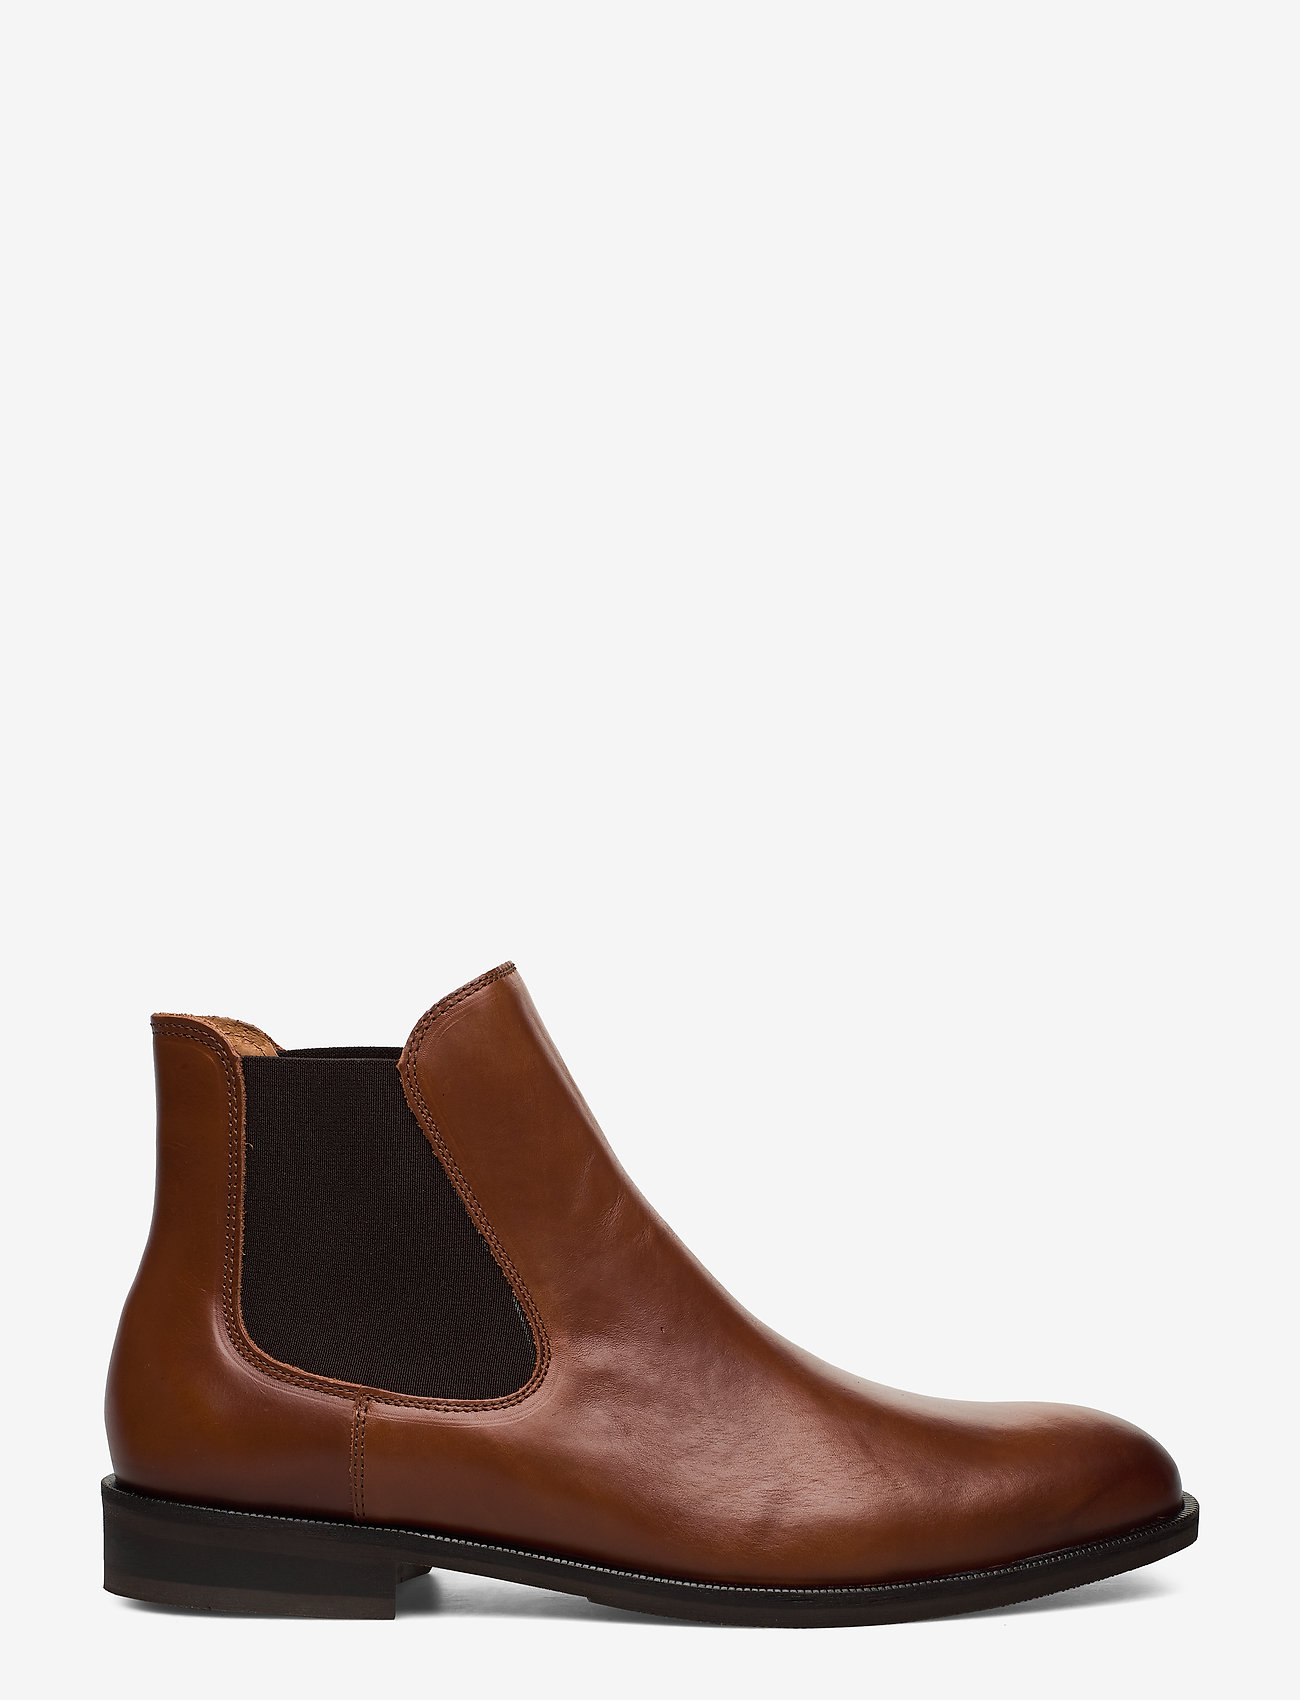 Selected Homme - SLHLOUIS LEATHER CHELSEA BOOT B NOOS - chelsea boots - cognac - 1